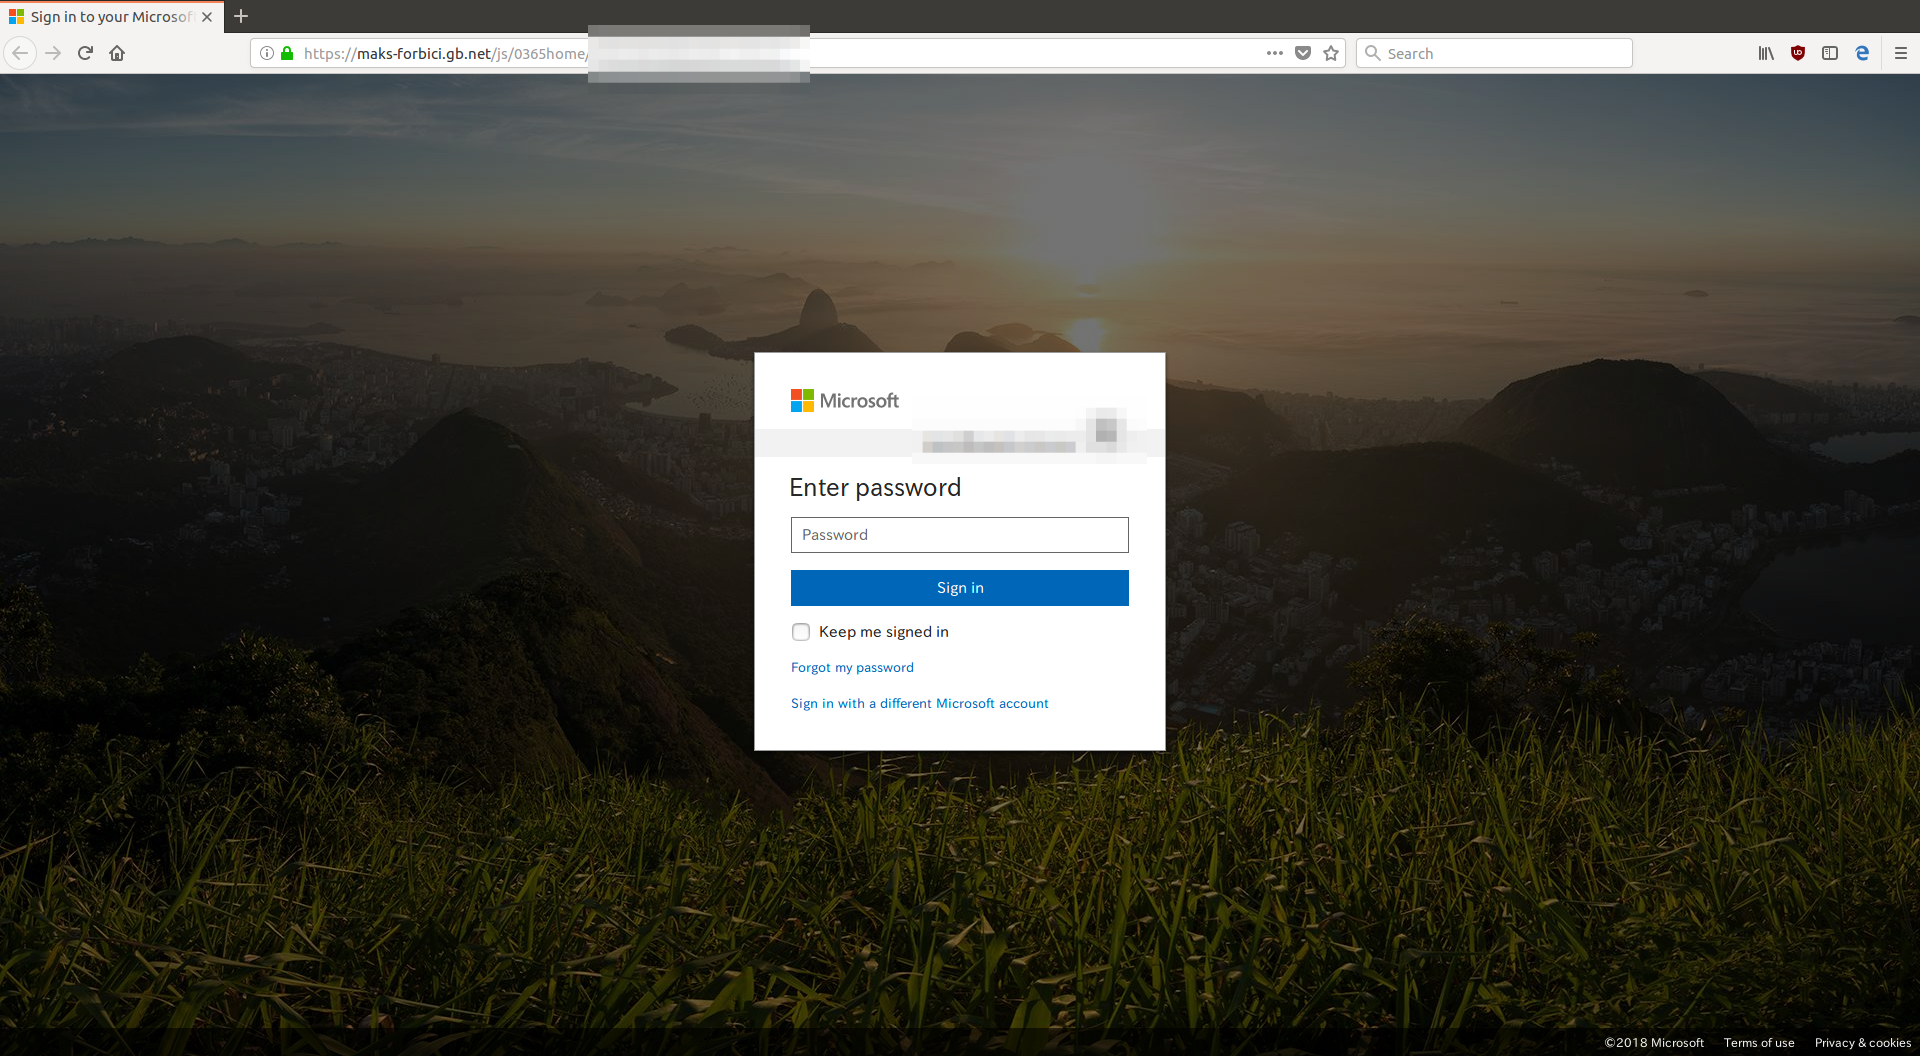 Sign in to your Microsoft account - Mozilla Firefox_429